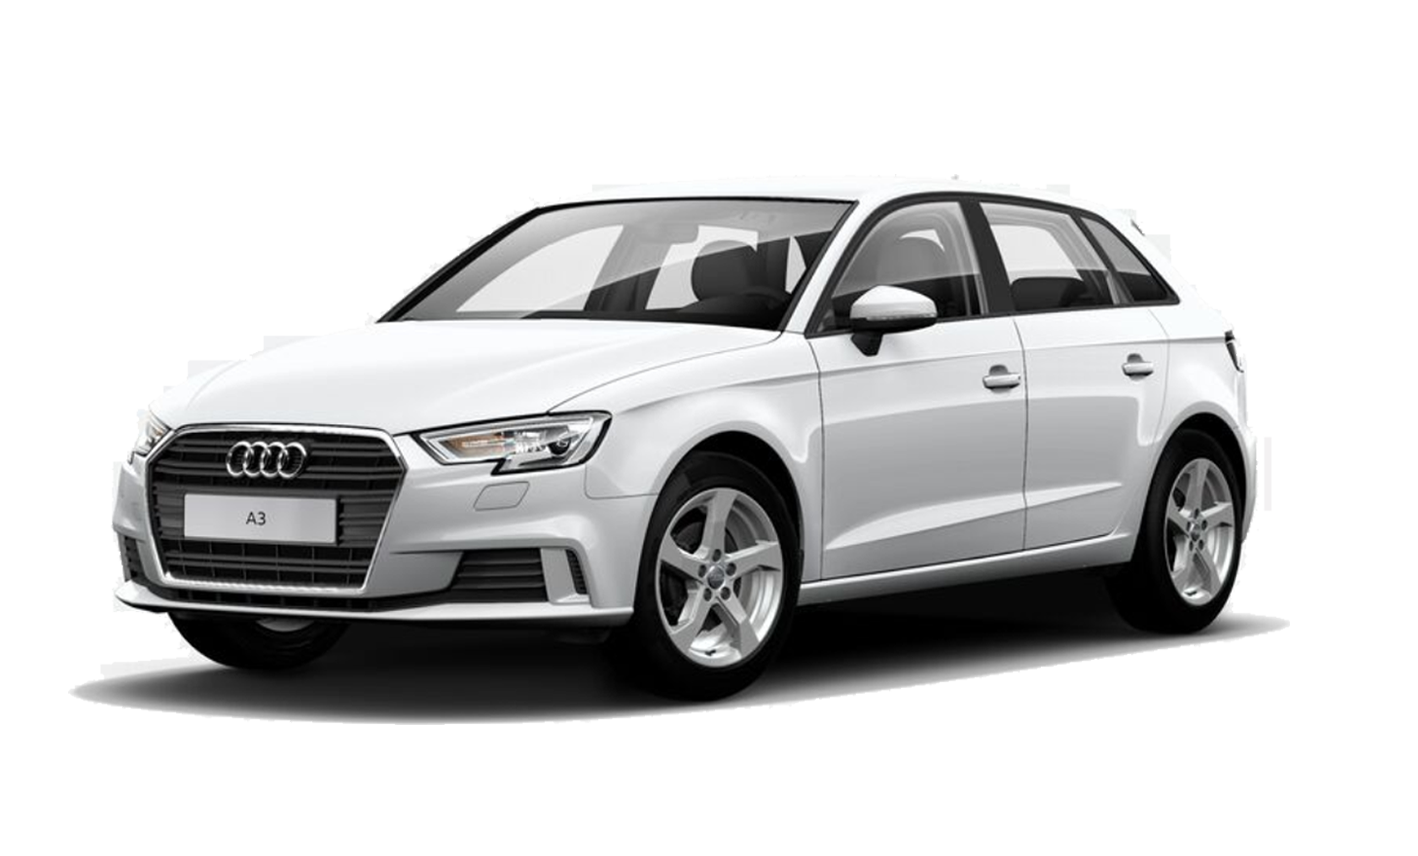 Audi A3 Financial Lease